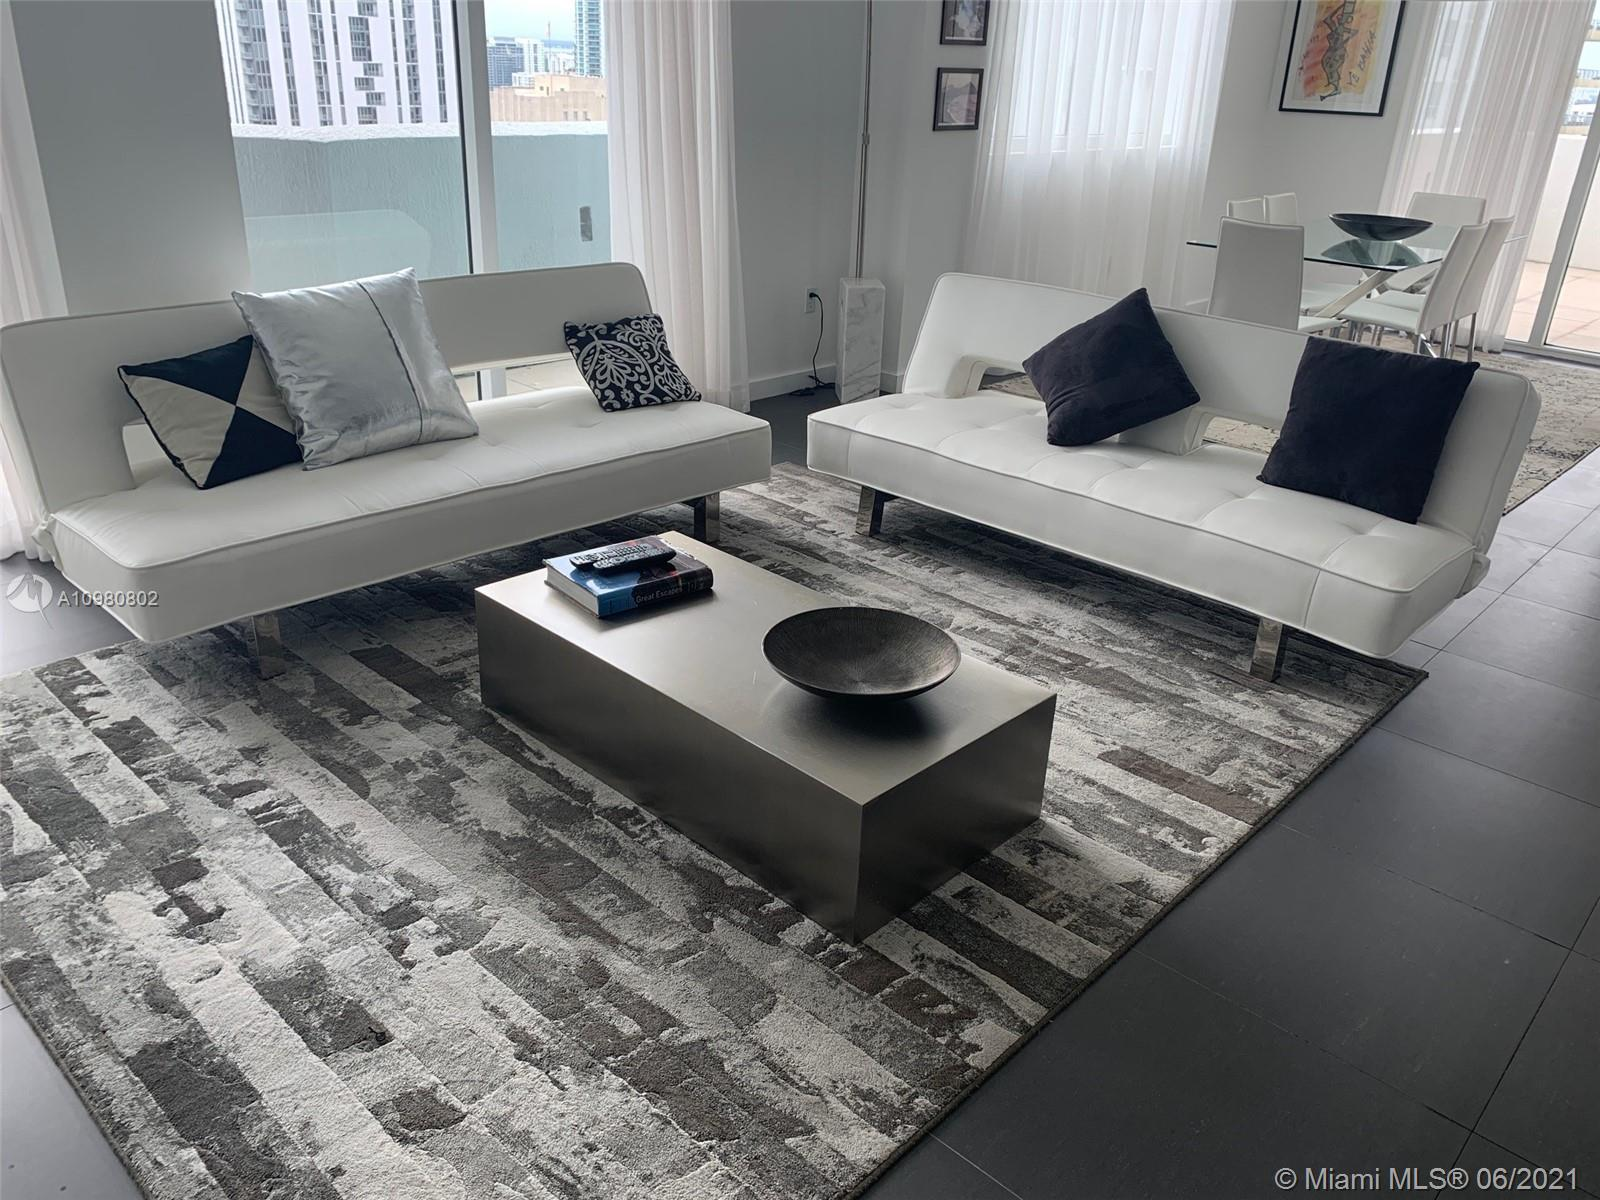 Investment opportunity!!! Spacious corner unit fully furnished at the prestigious Vizcayne, in Downtown of Miami. Priced to sale, don't miss this opportunity to buy this beautiful apartment as your second home or investment property.